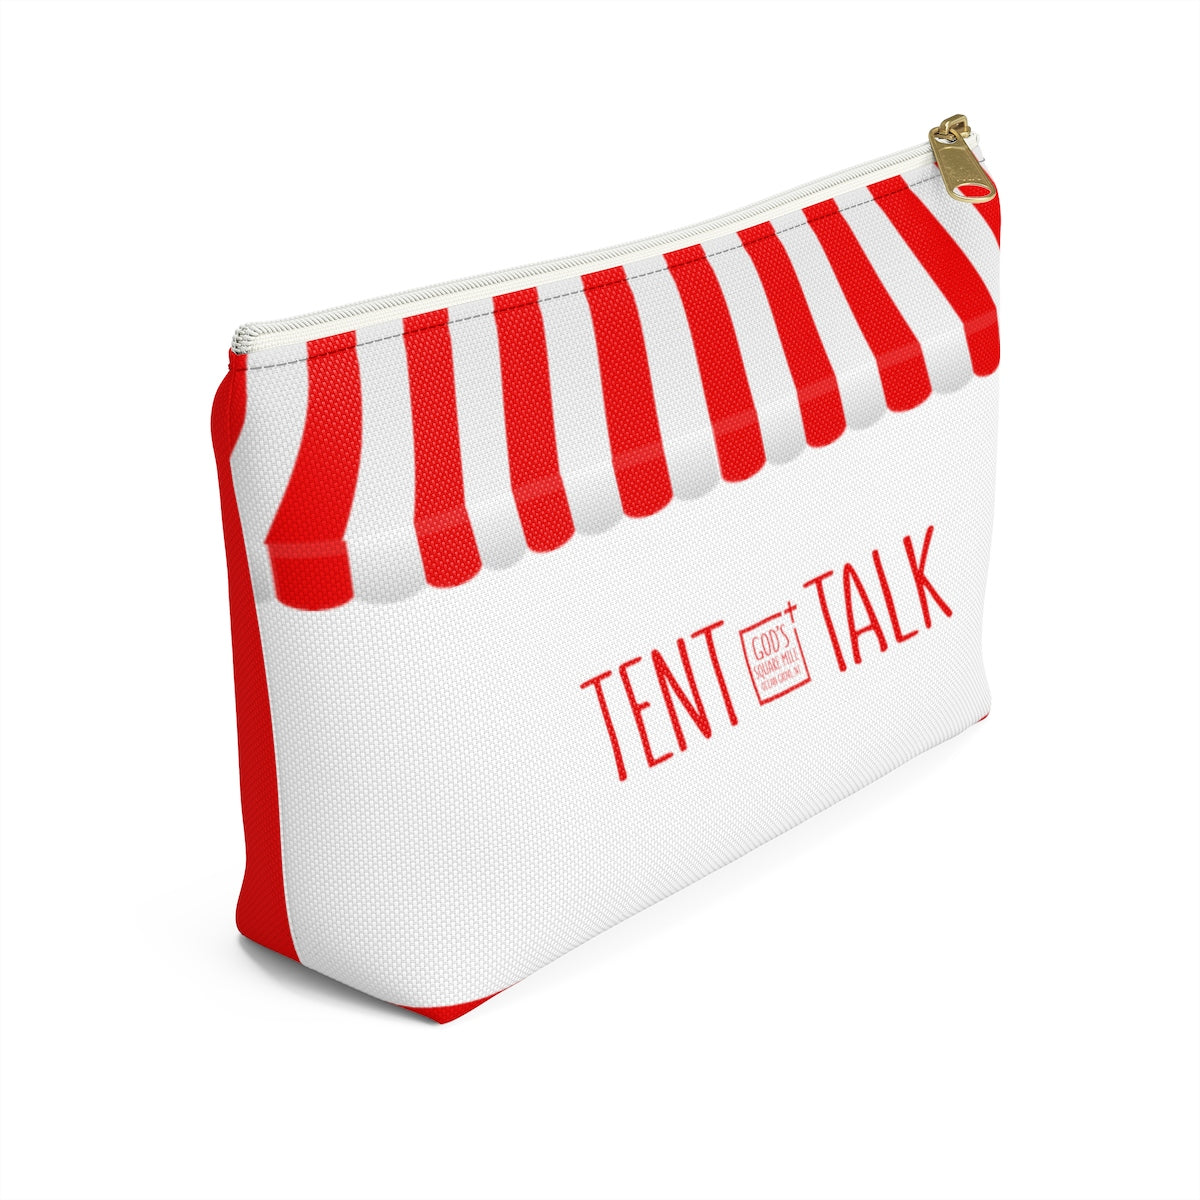 Red Stripe  -  Accessory Bag: Tent Talk - GoGannon Designs